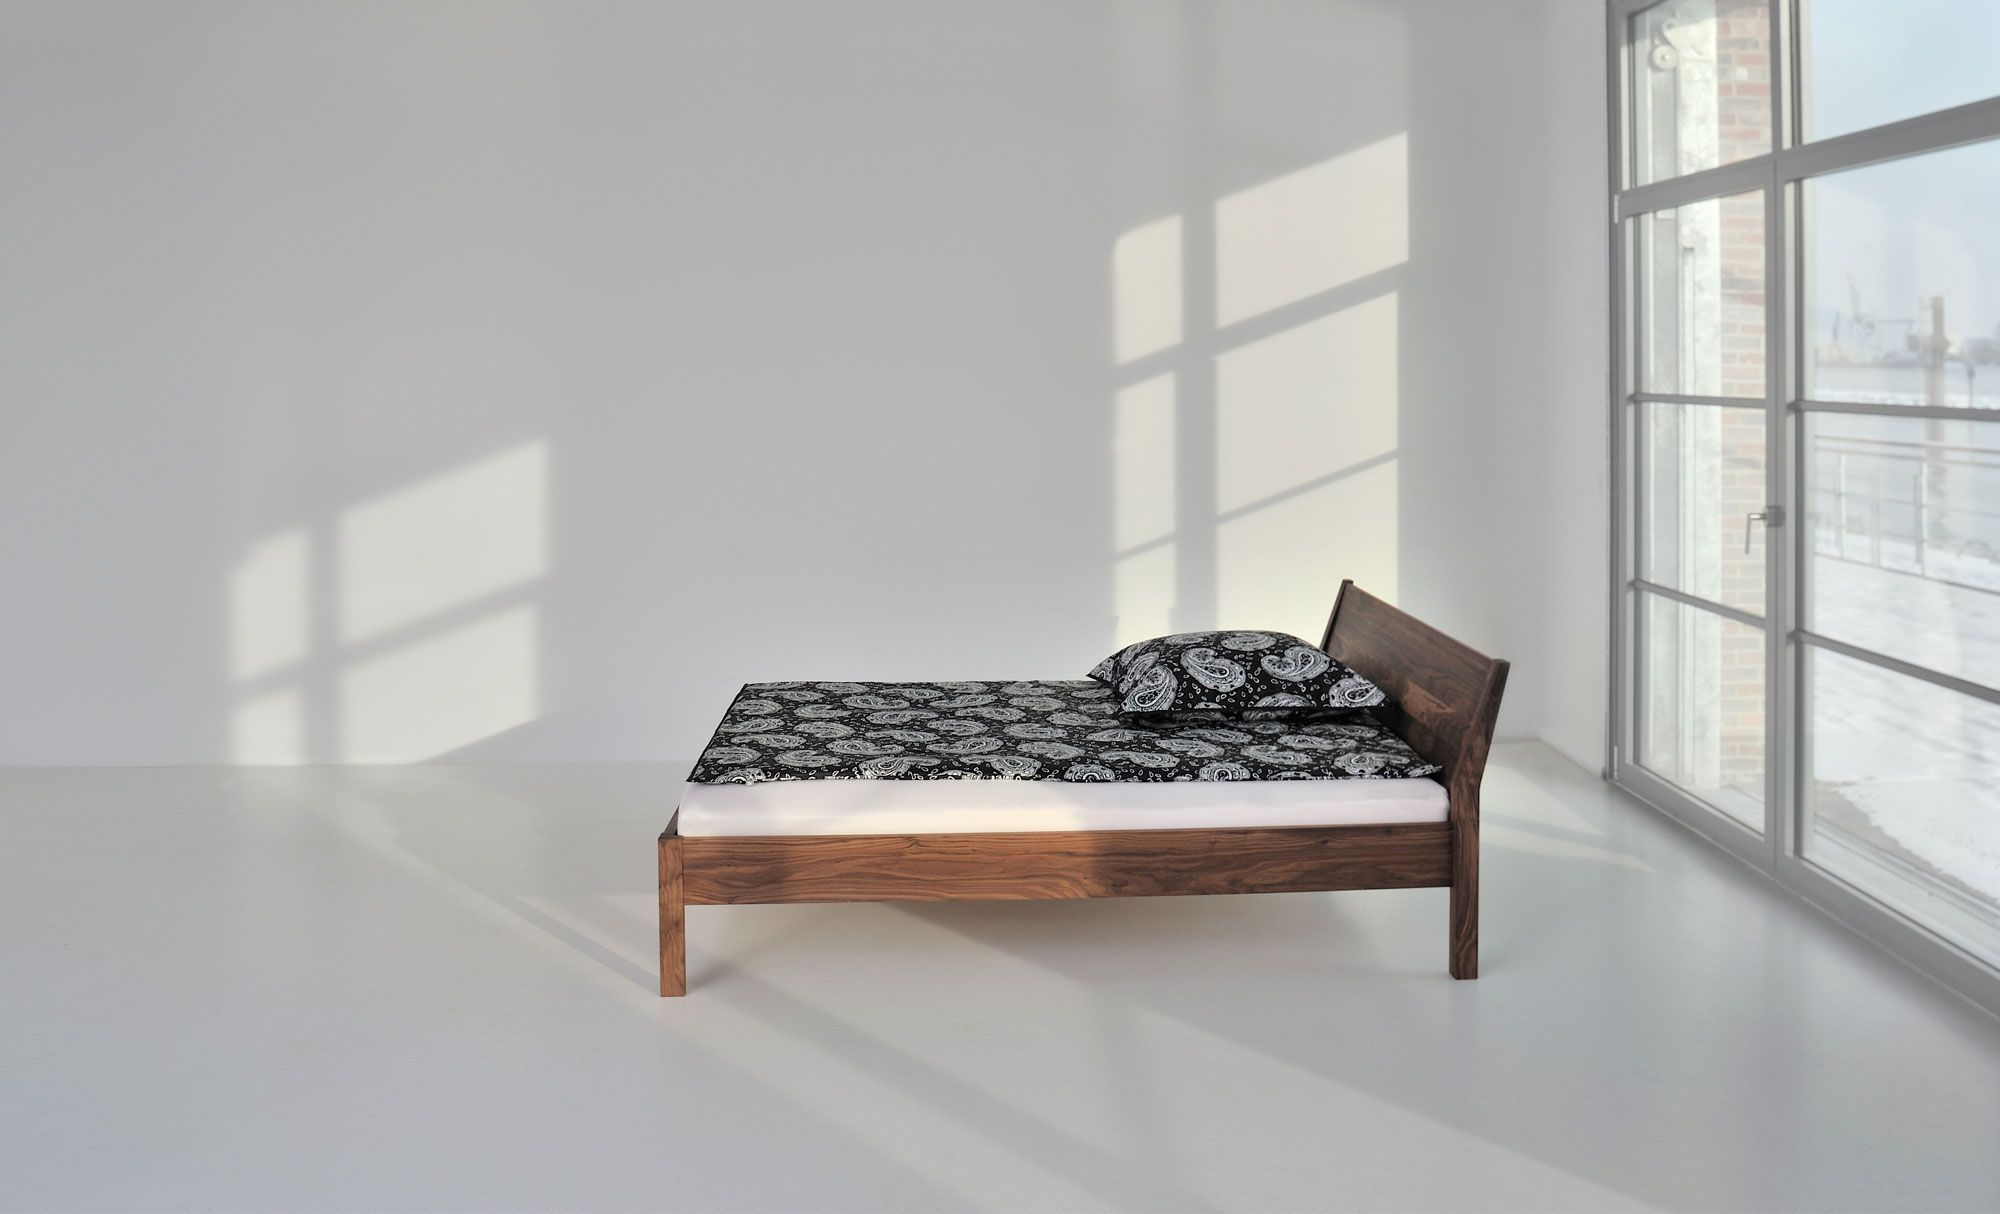 Mia Villa Couchtisch Wooden Bed Villa 2753a Custom Made In Solid Wood By Vitamin Design